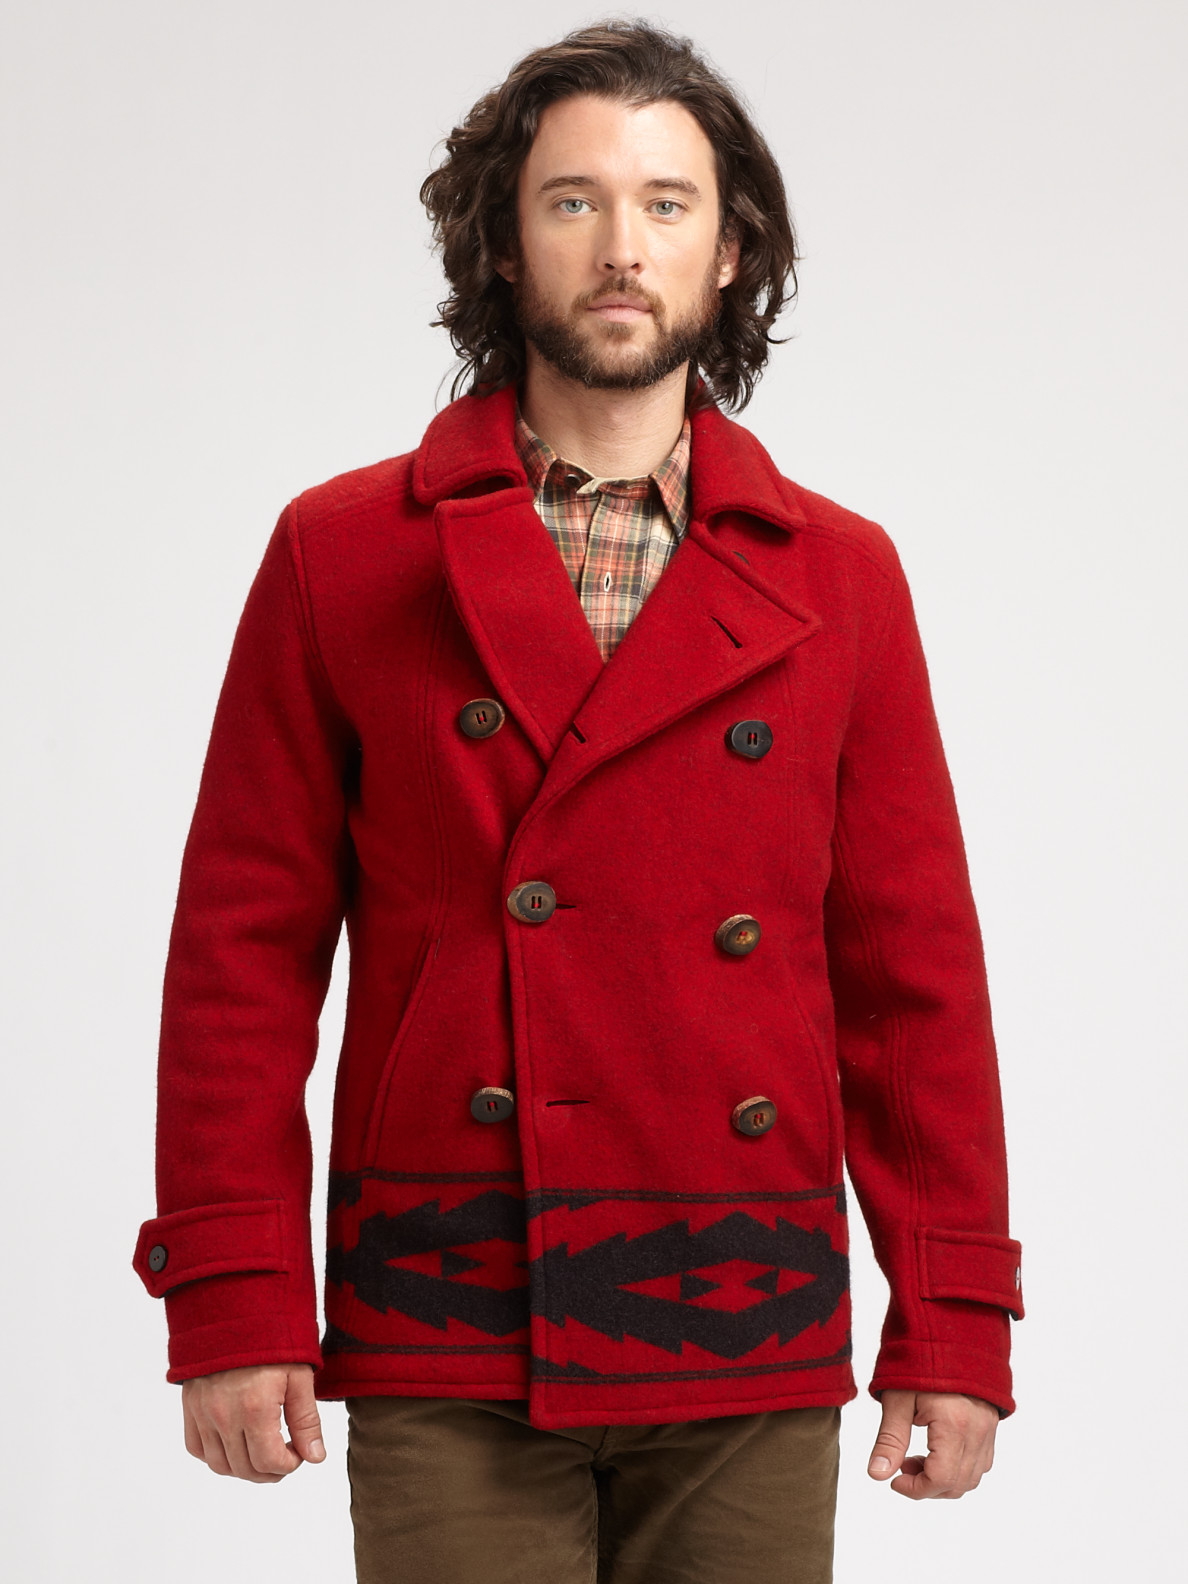 Polo ralph lauren Double Breasted Wool Jacket in Red for Men | Lyst